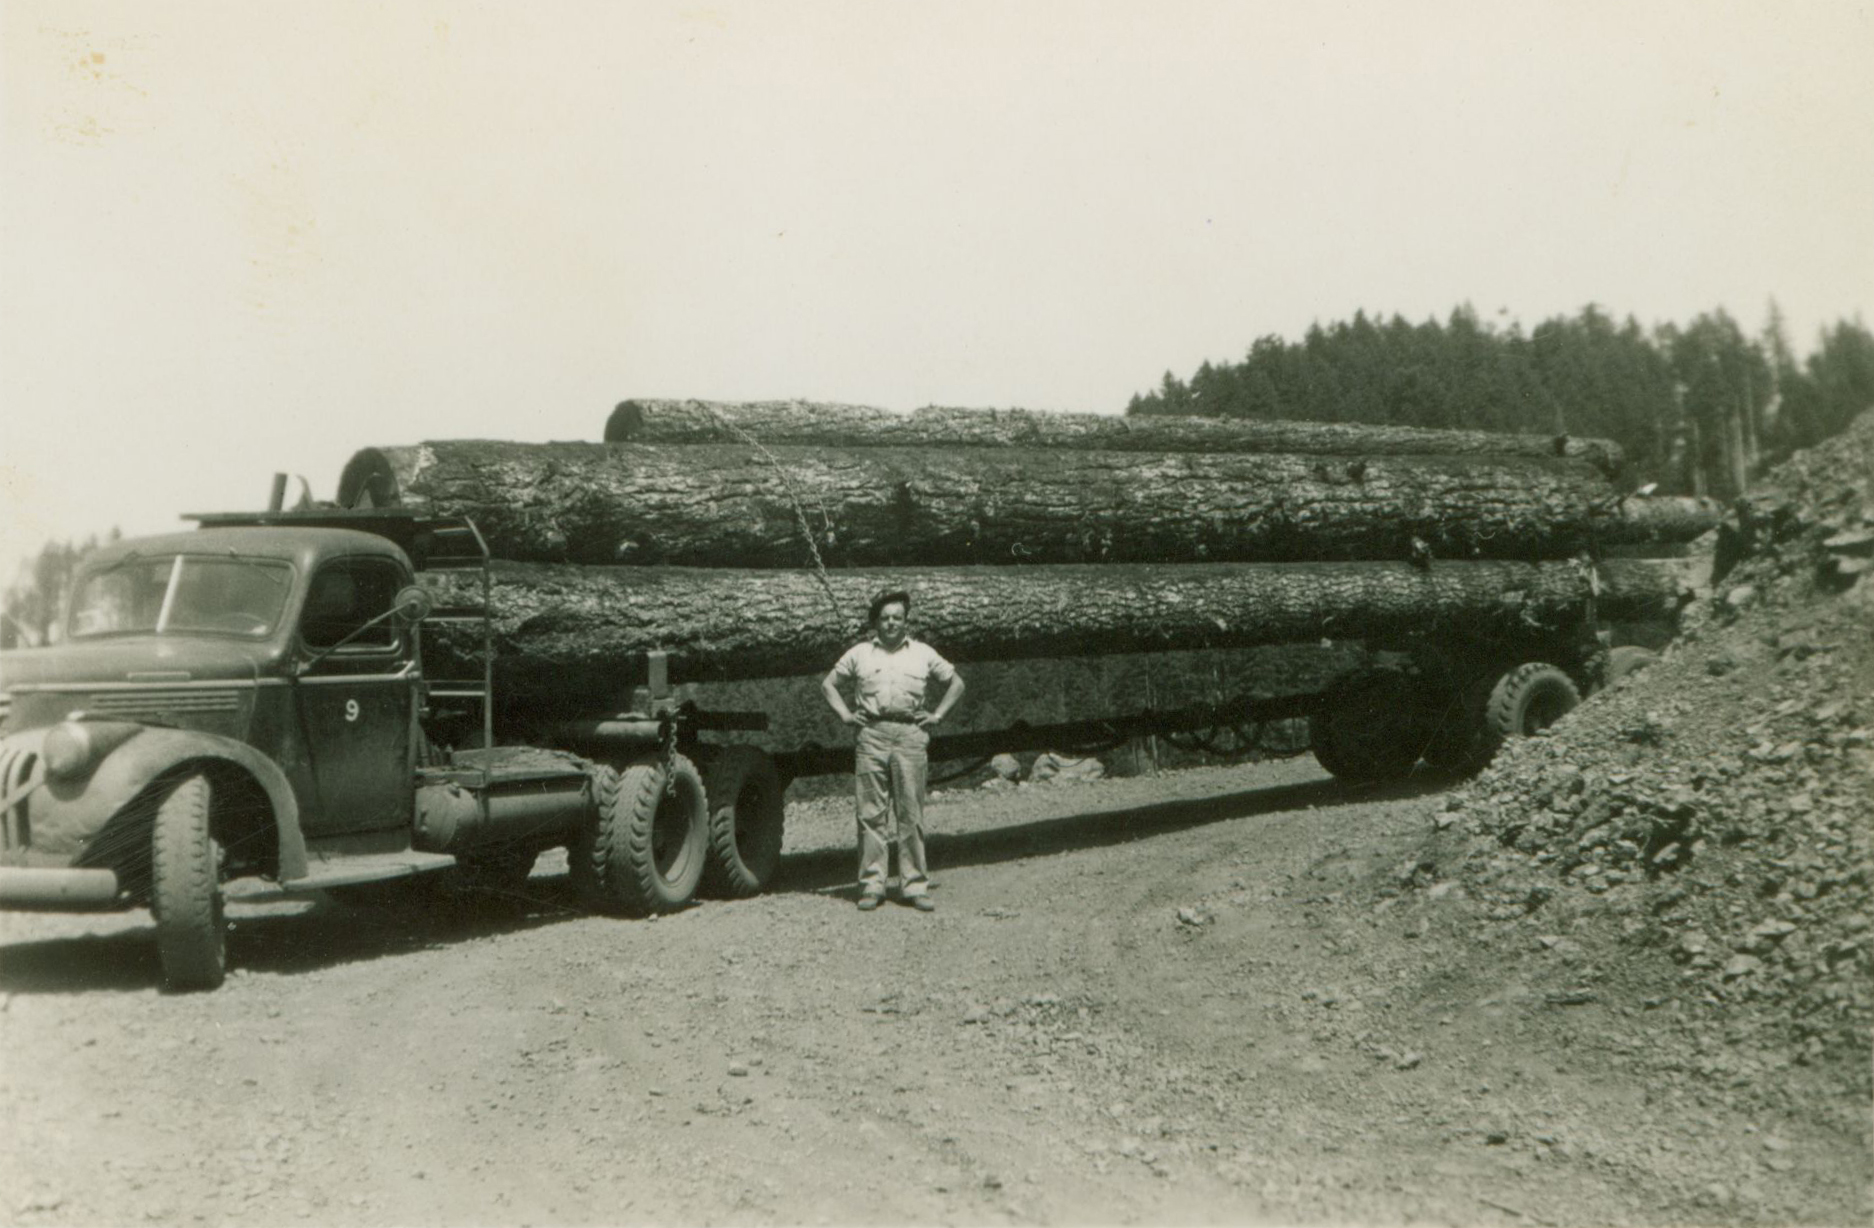 D. C. Perkins started trucking in the 1930's.